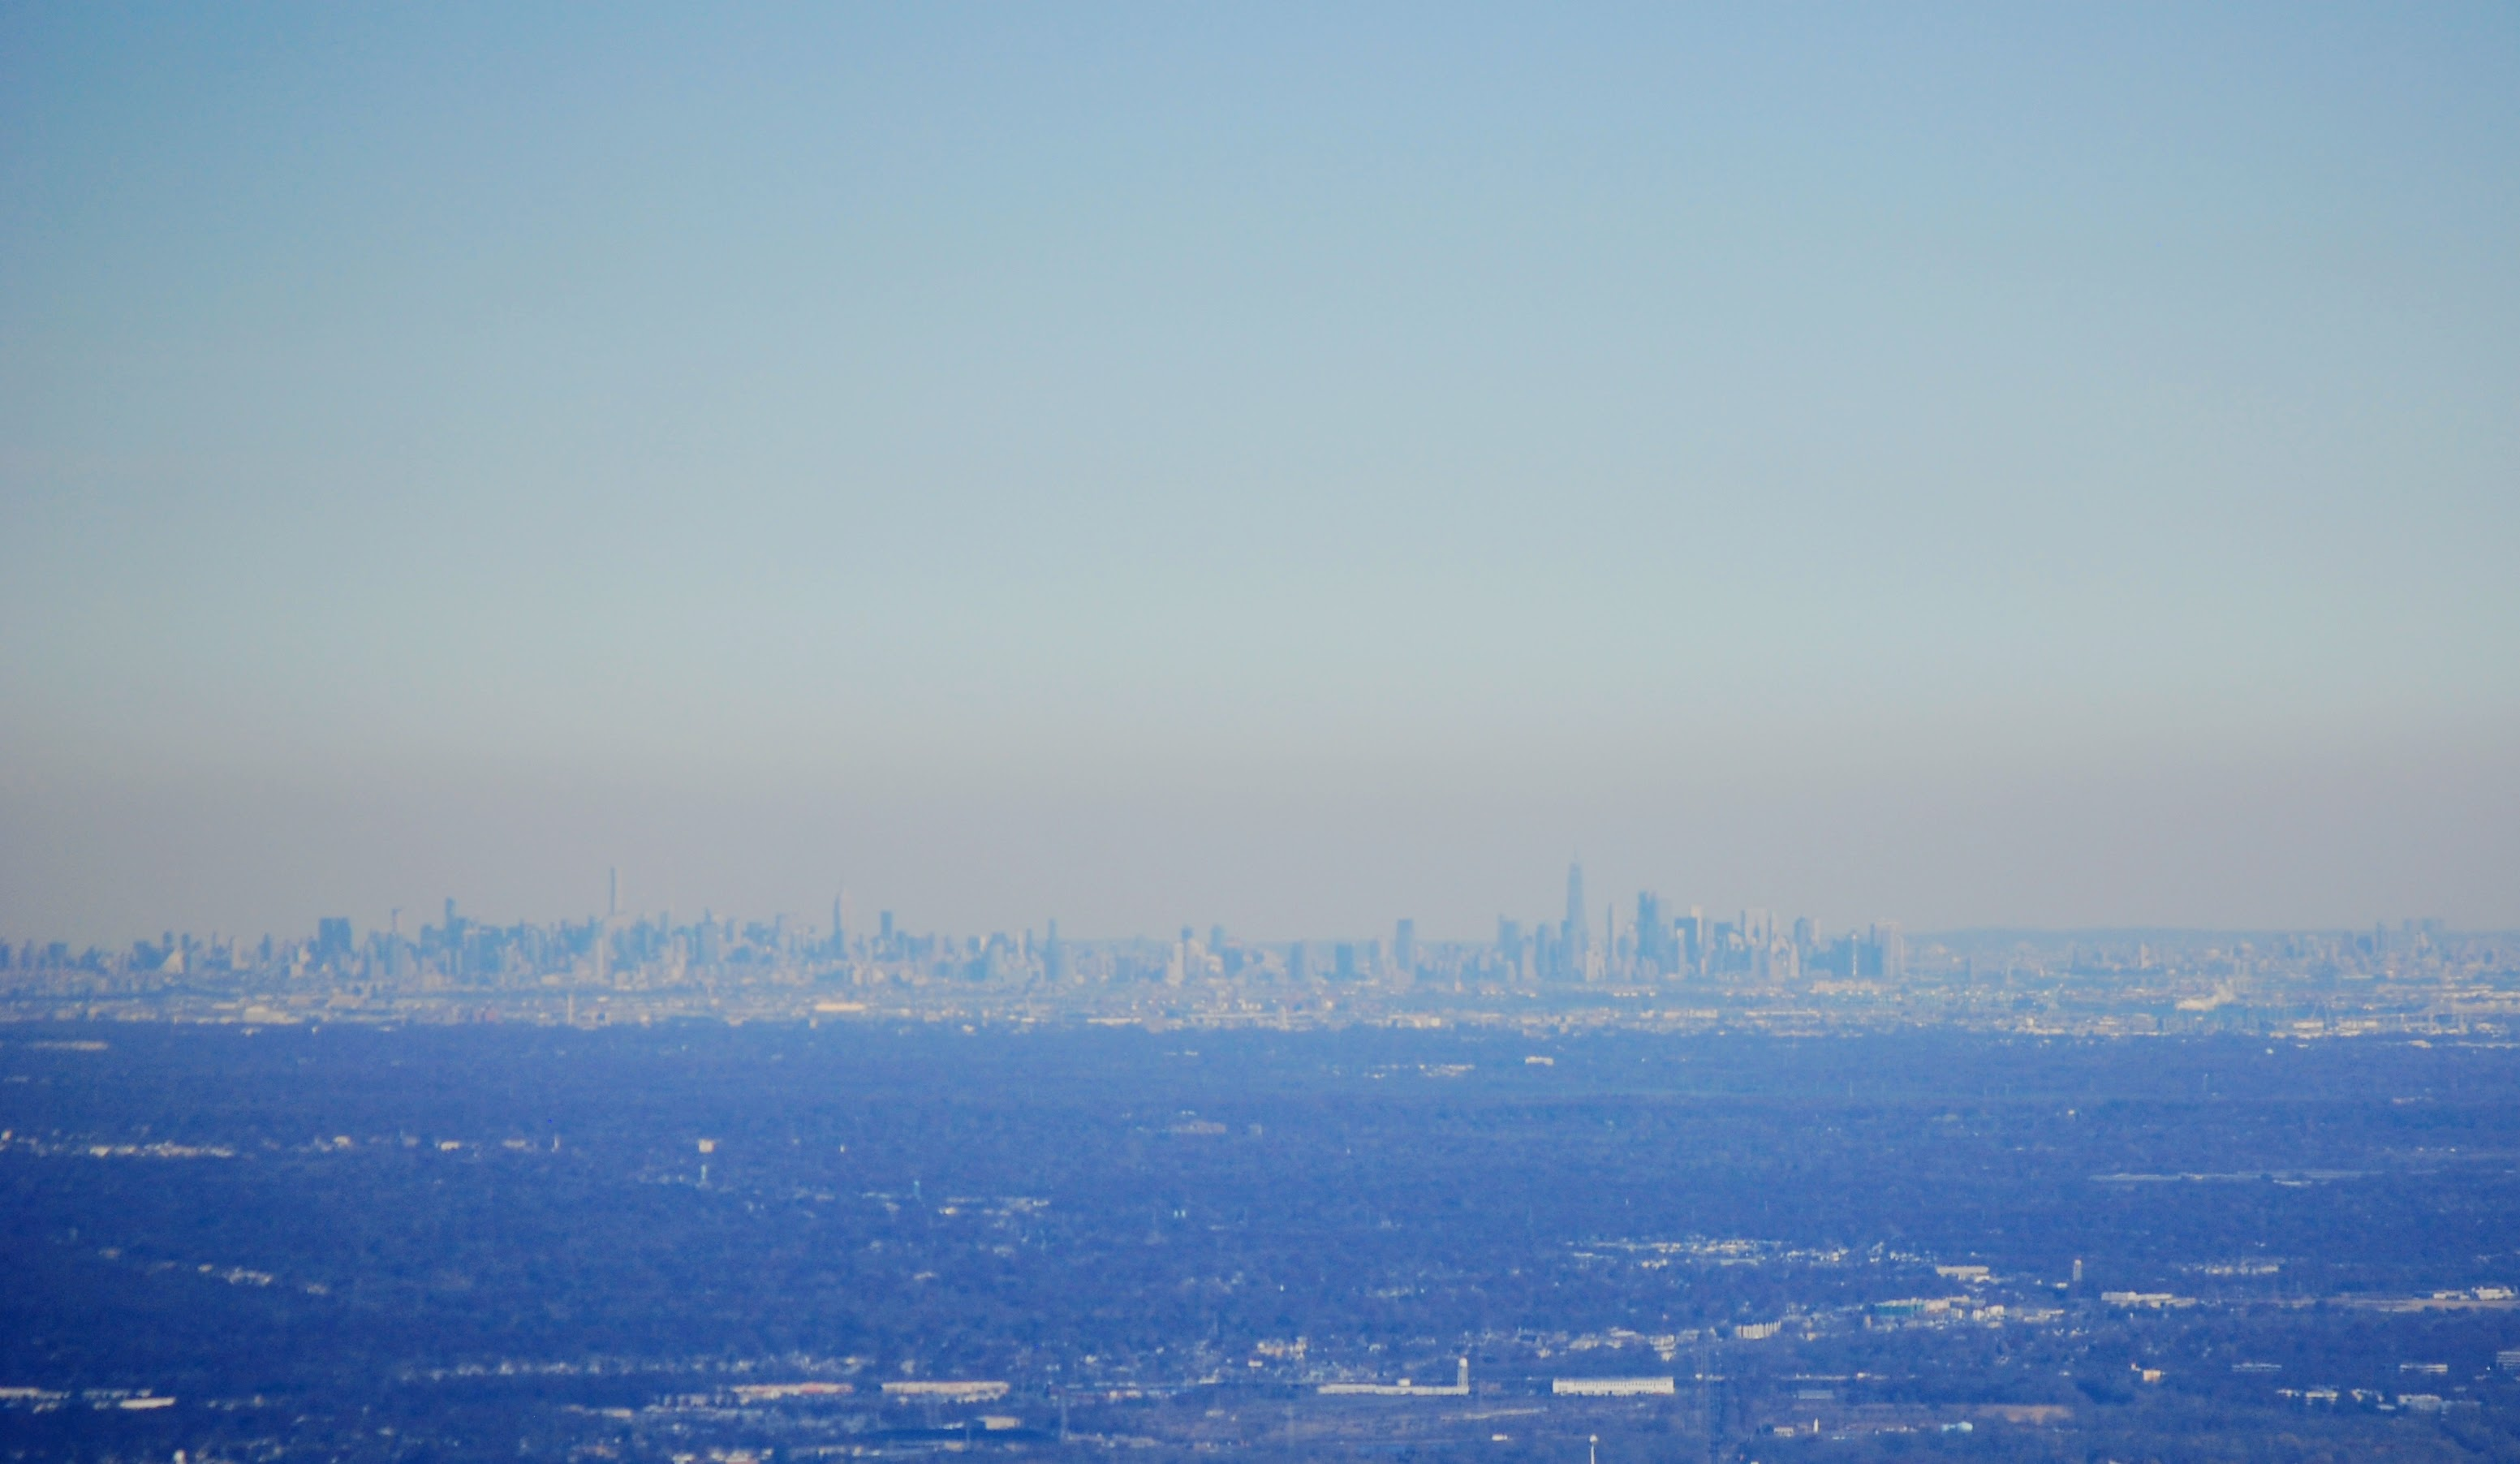 Manhattan skyline, seen from New Jersey, on a clear winter's day